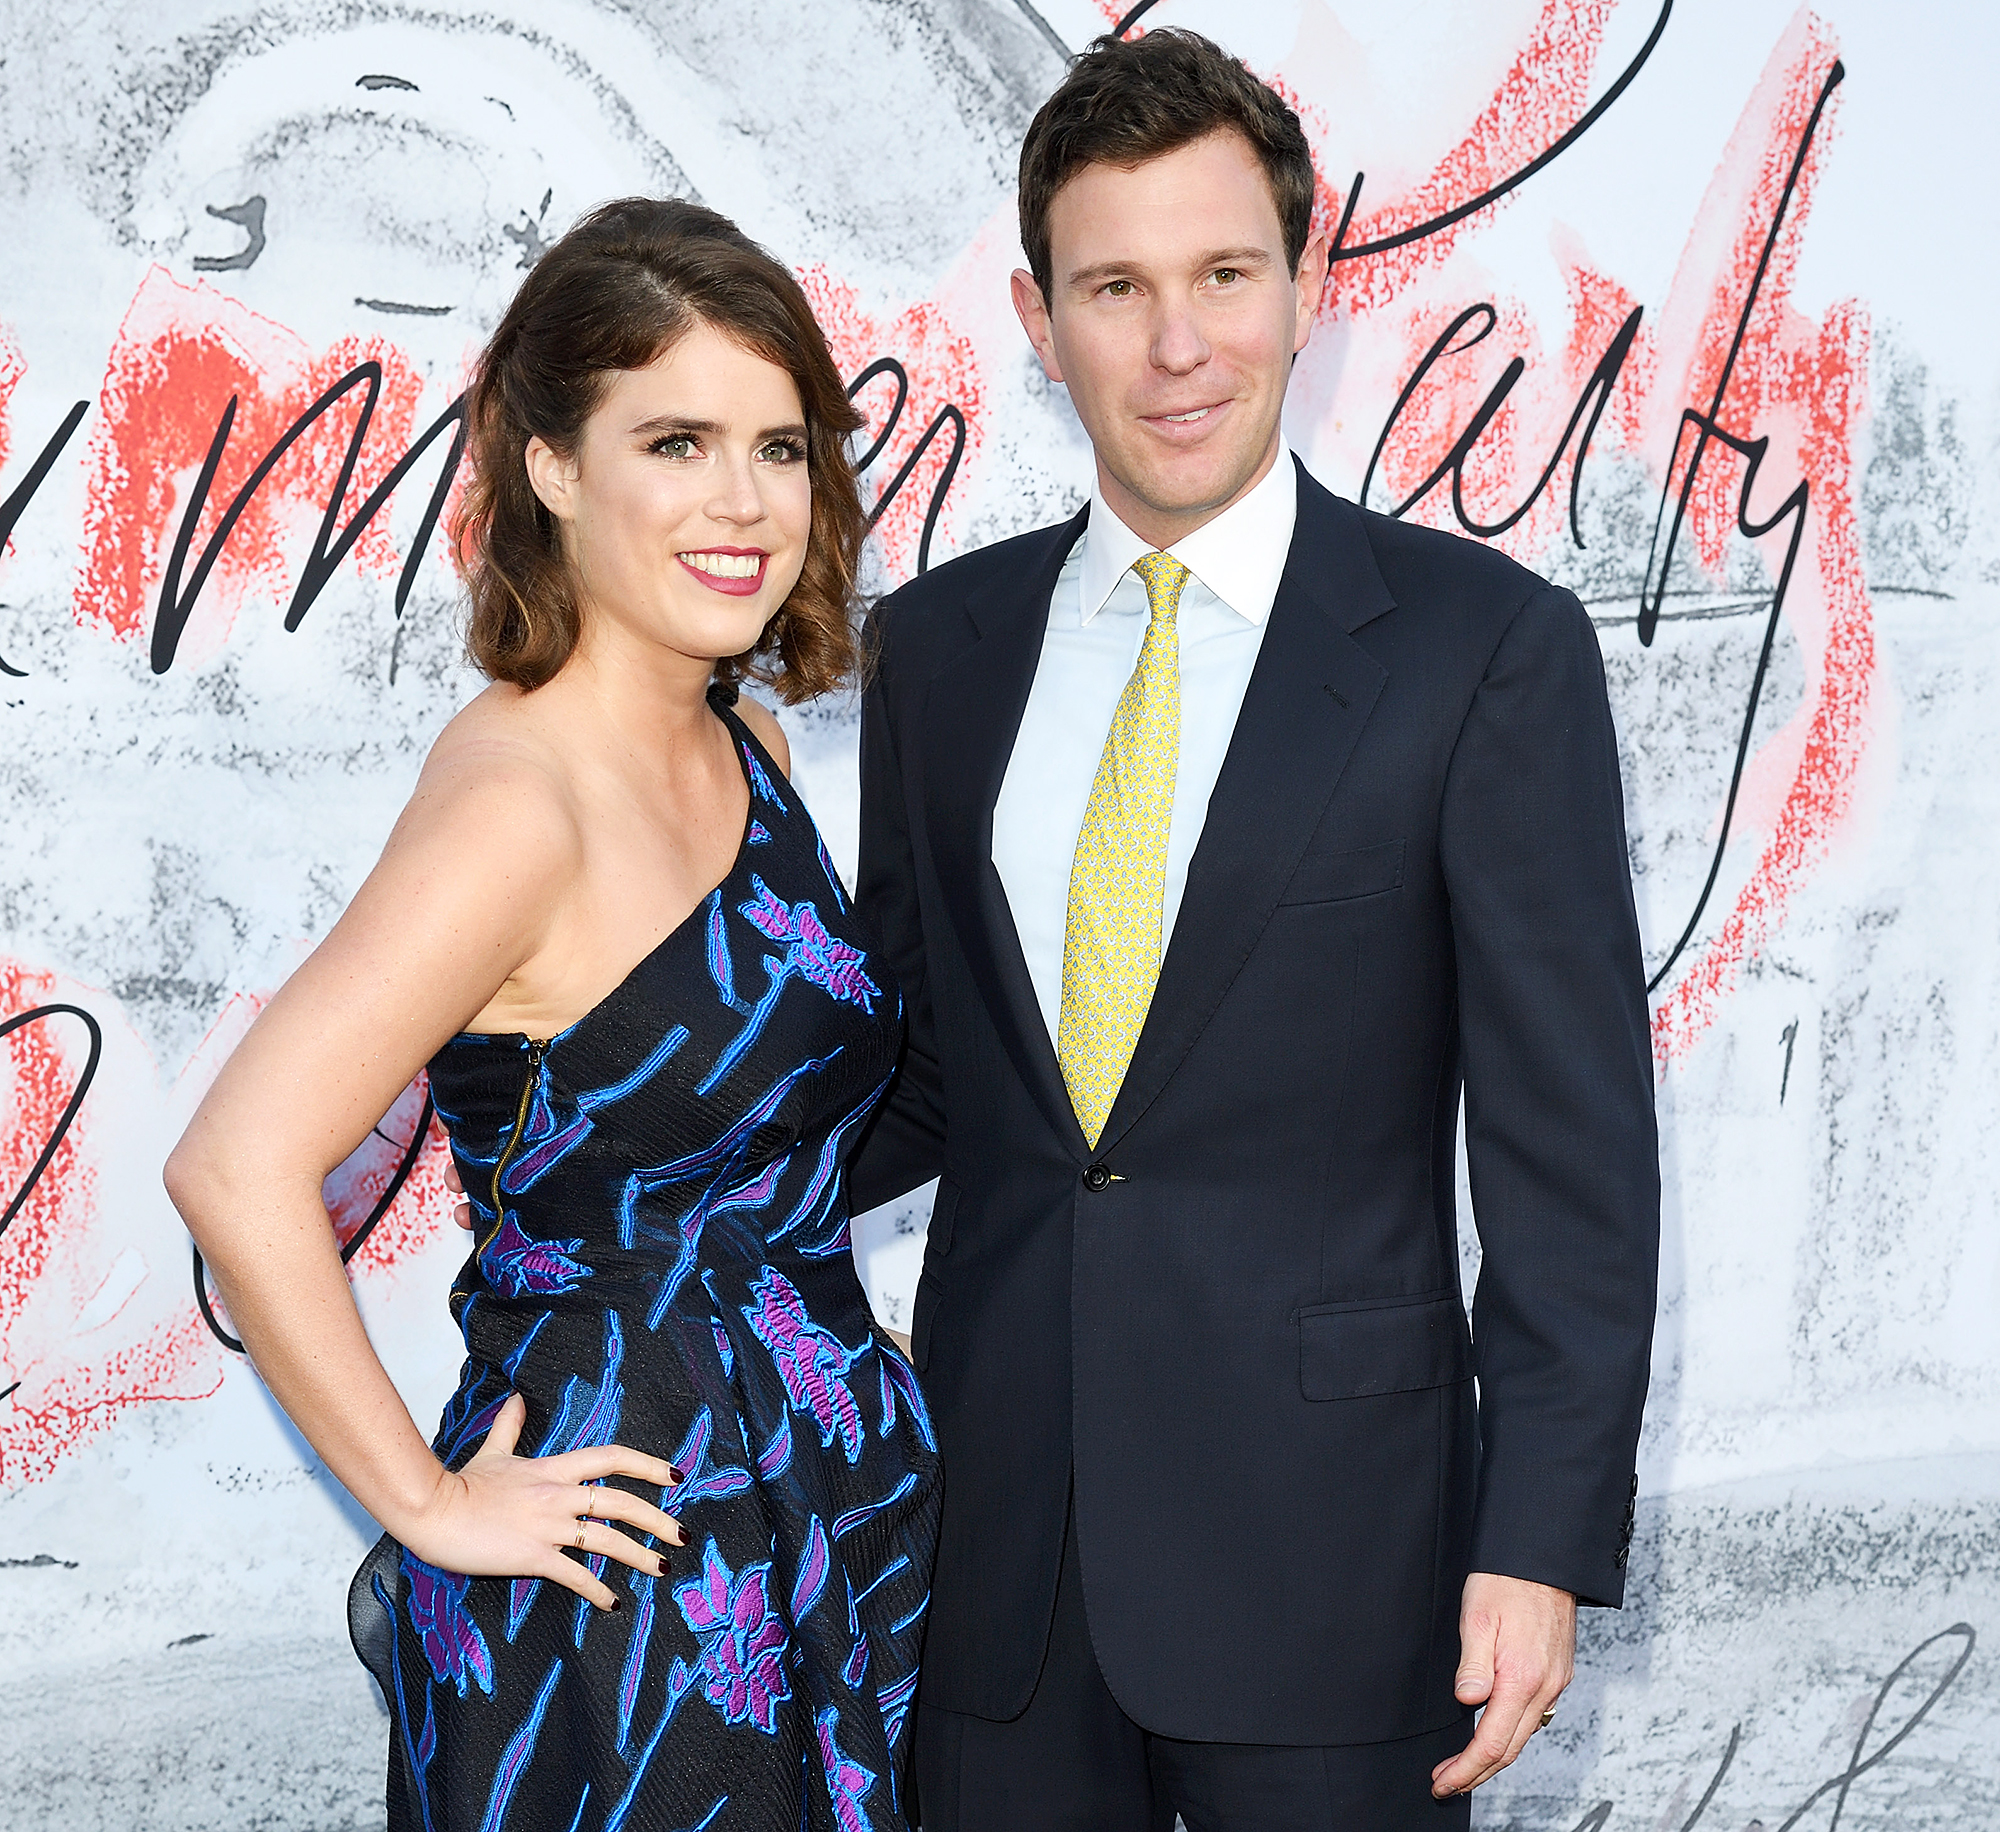 Princess Eugenie on Fiance Jack Brooksbank: 'It Was Love at First Sight'